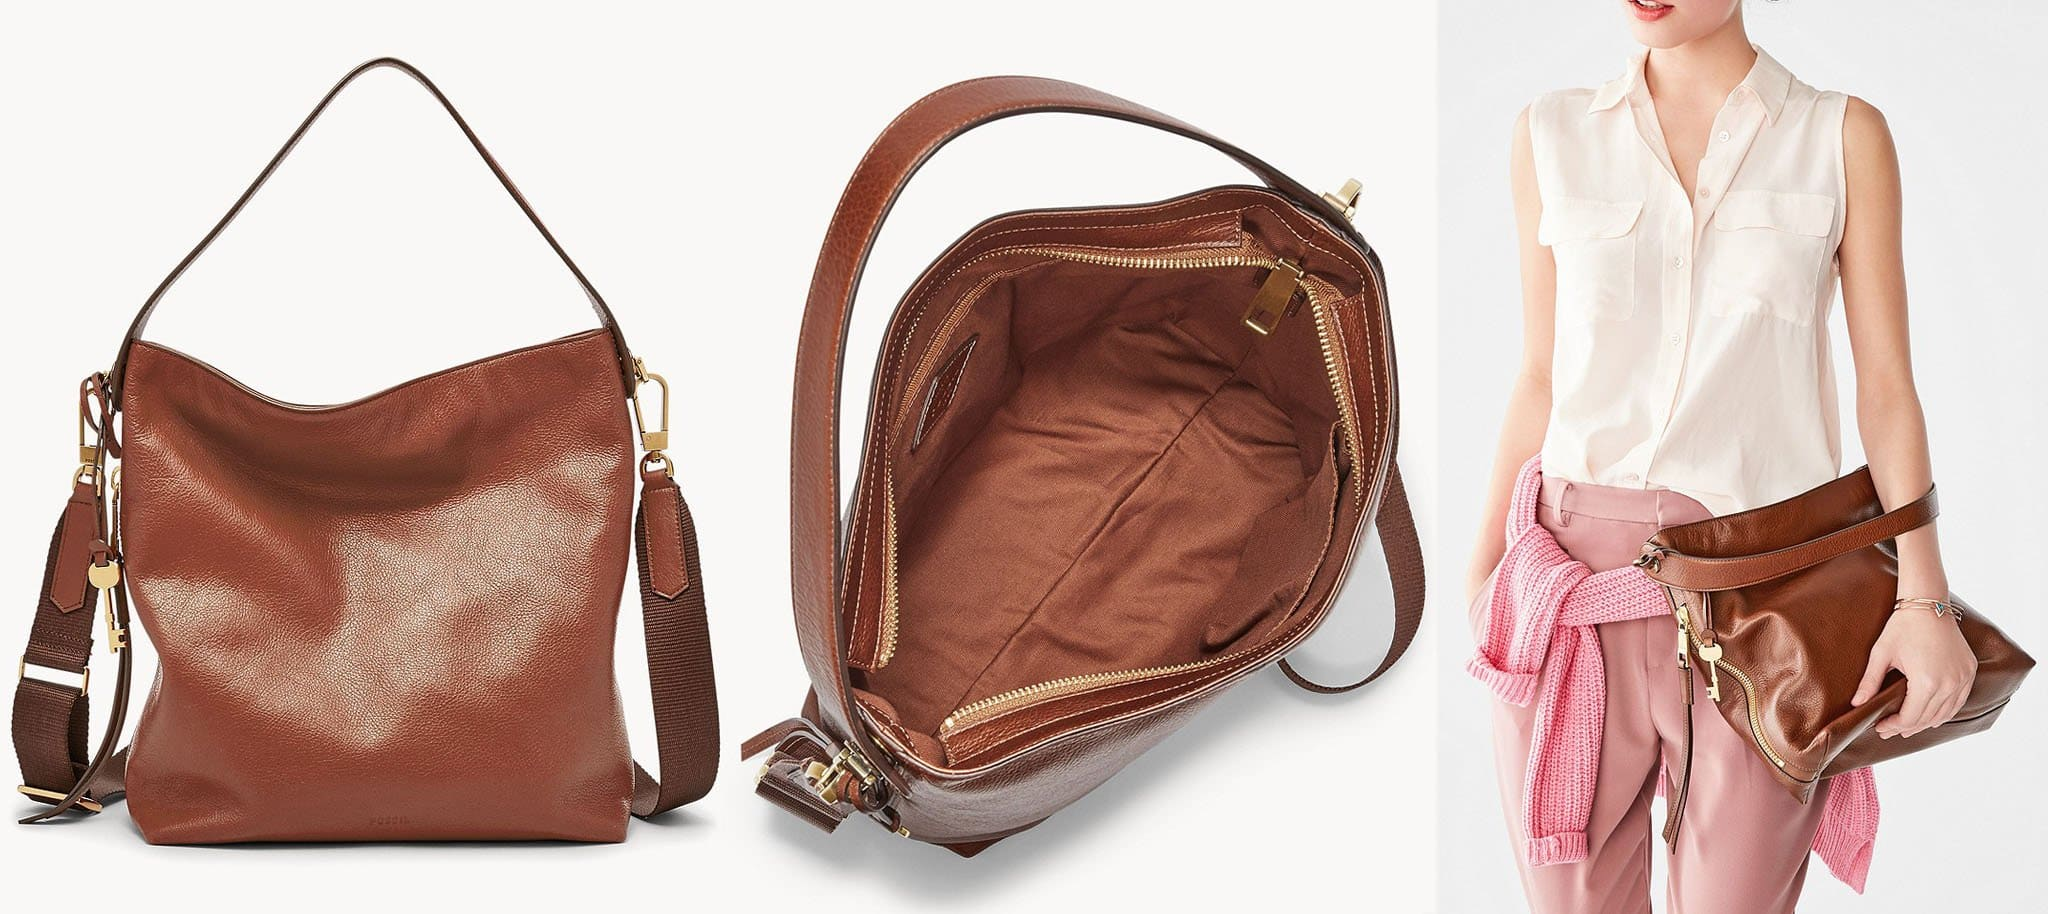 Fossil's bestseller is sturdy and spacious enough for your laptop or iPad